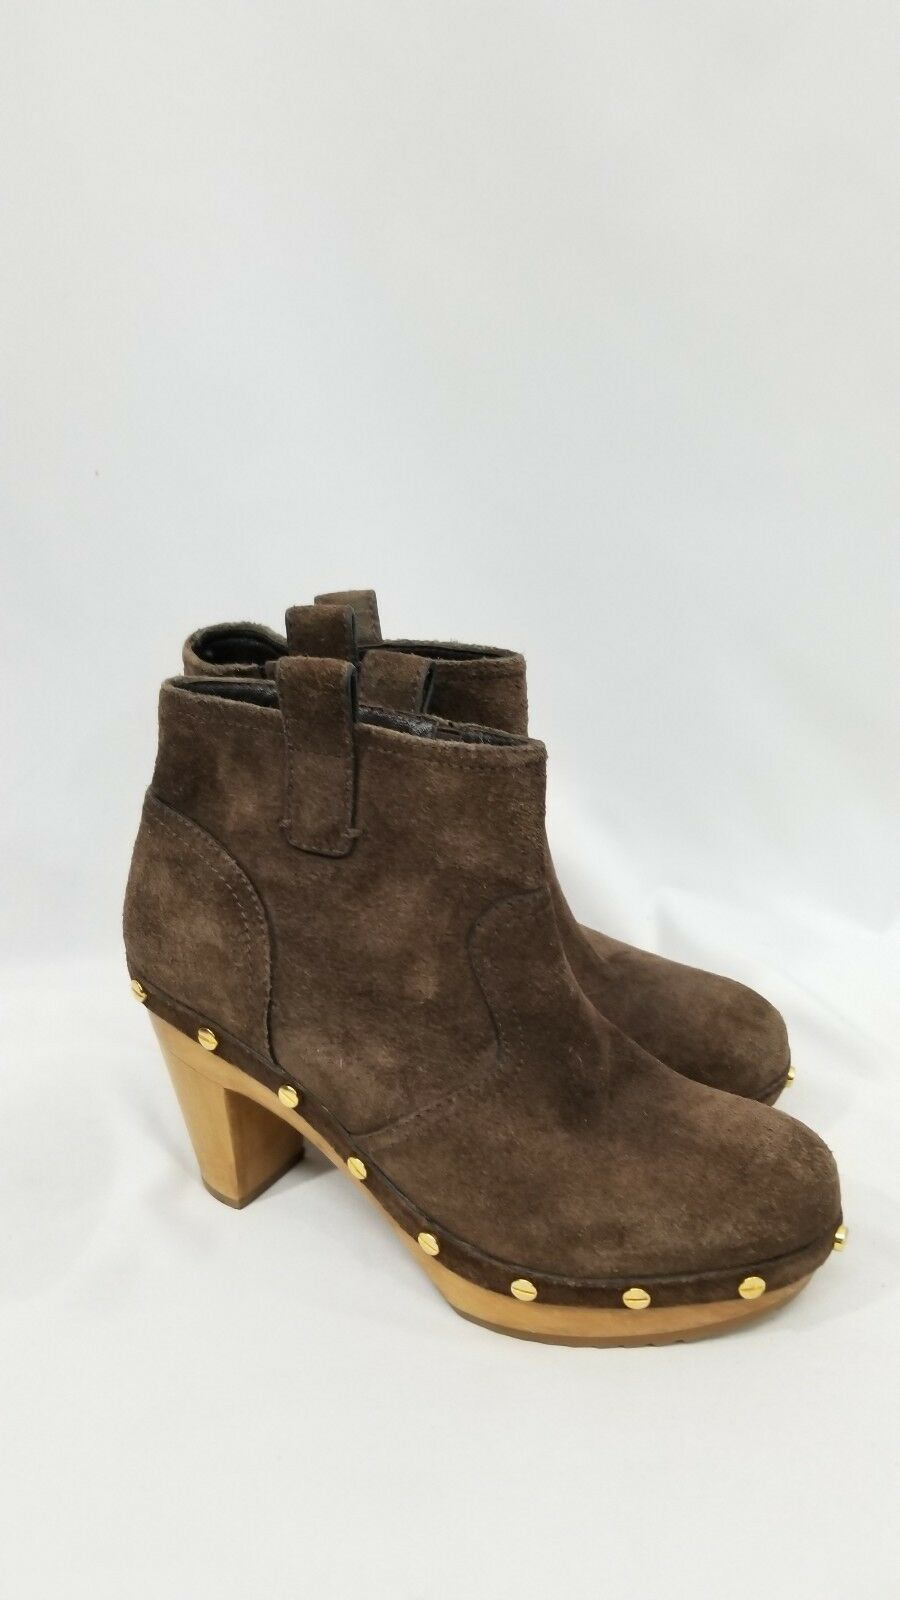 Tory Burch Brown Suede Studded Wooden Heel Heel Heel Ankle Boots Womens Size 7M 53f373